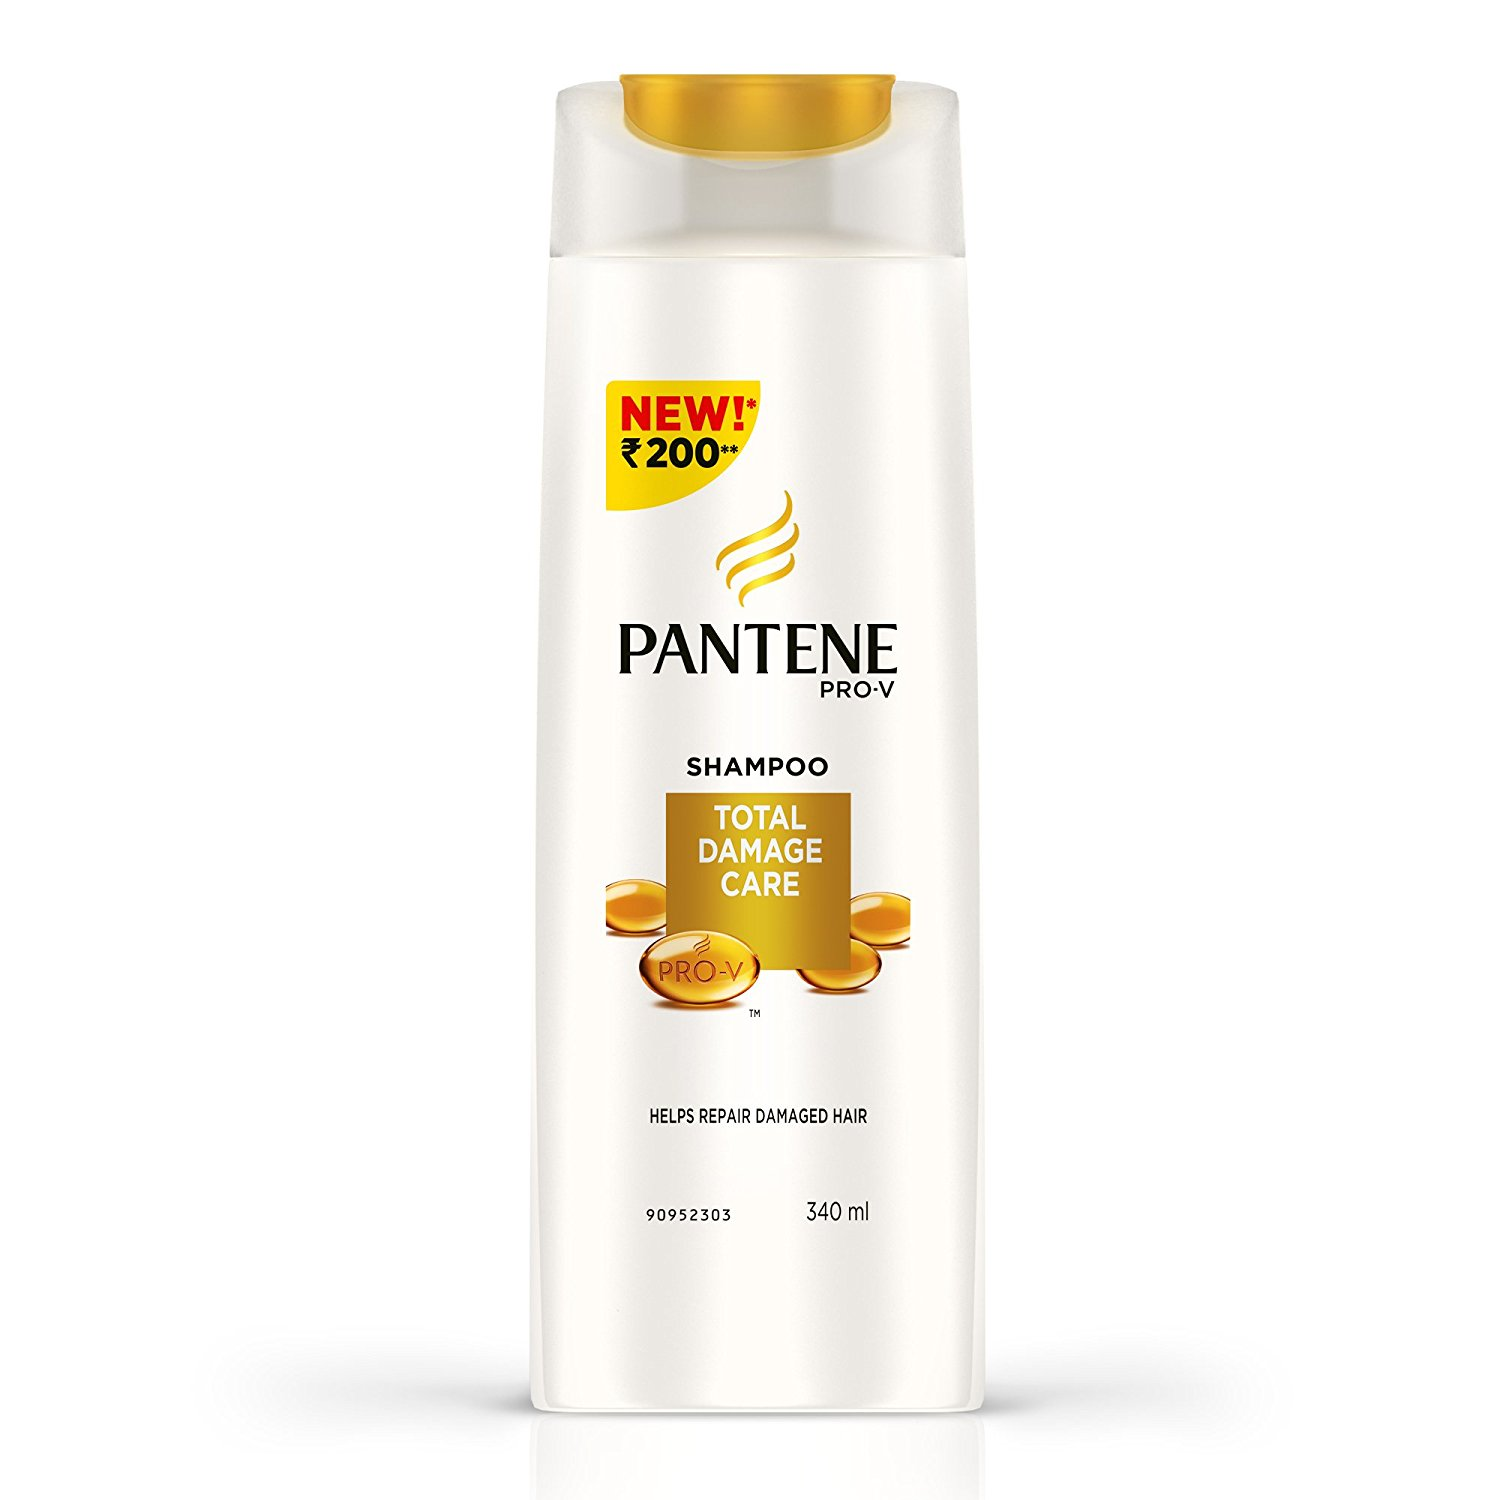 Get shiny, healthy looking hair with Pantene shampoos, conditioners, styling products and hair treatments, designed to meet your hair's individual needs.